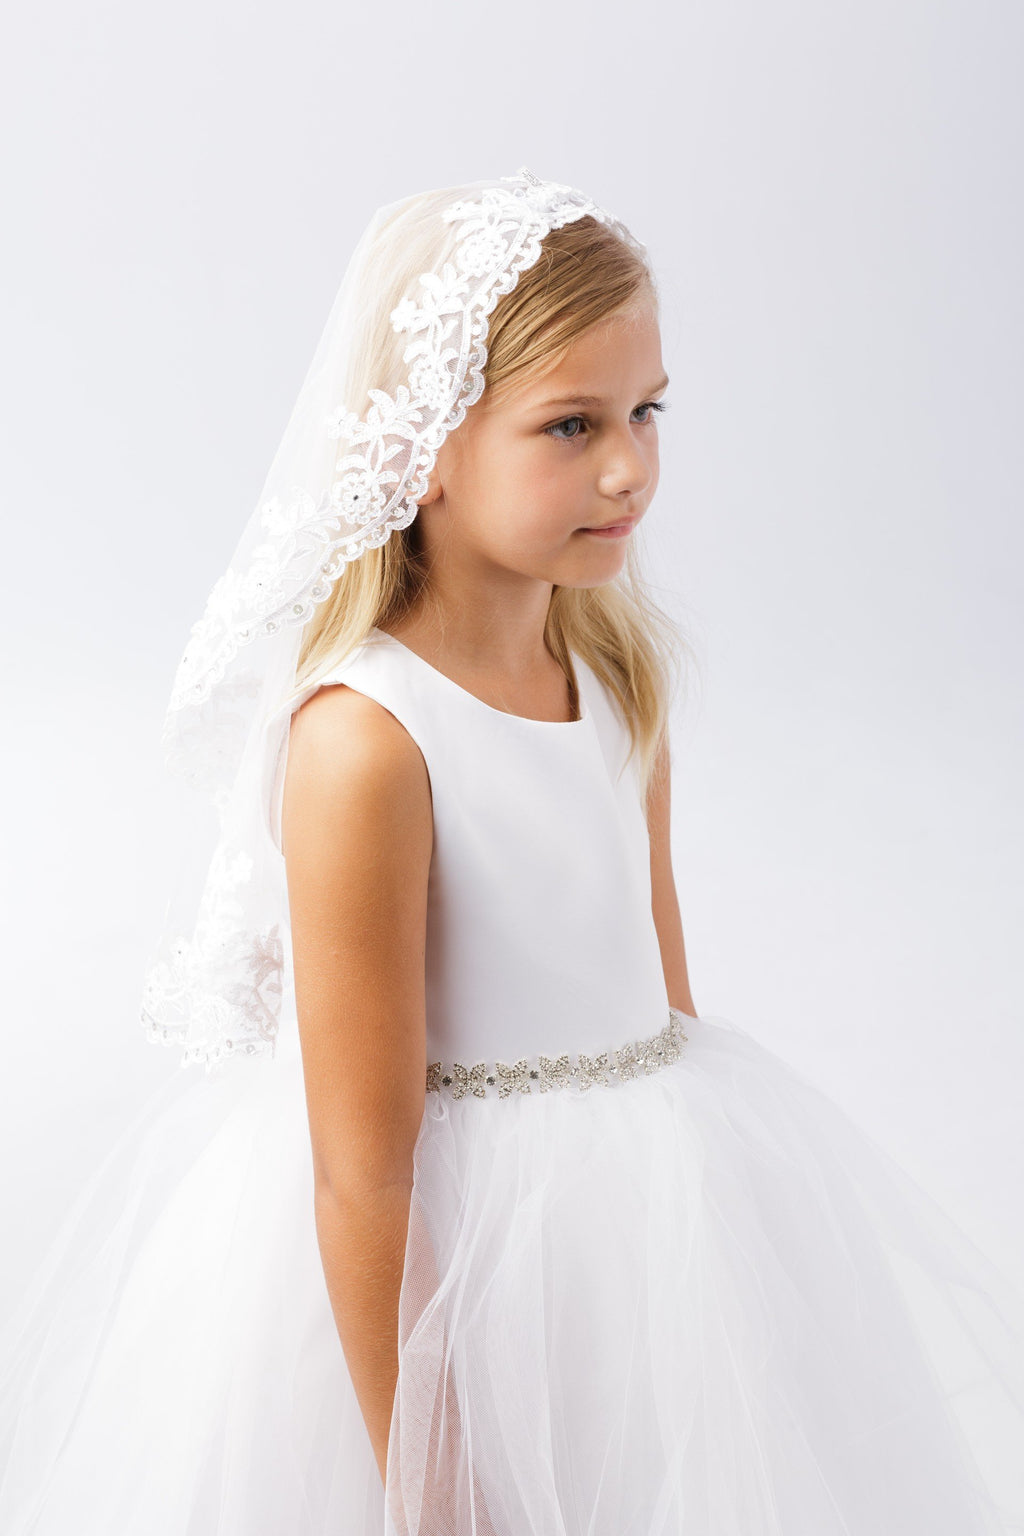 White Girl's Scalloped Floral Lace Edge Mantilla Veil